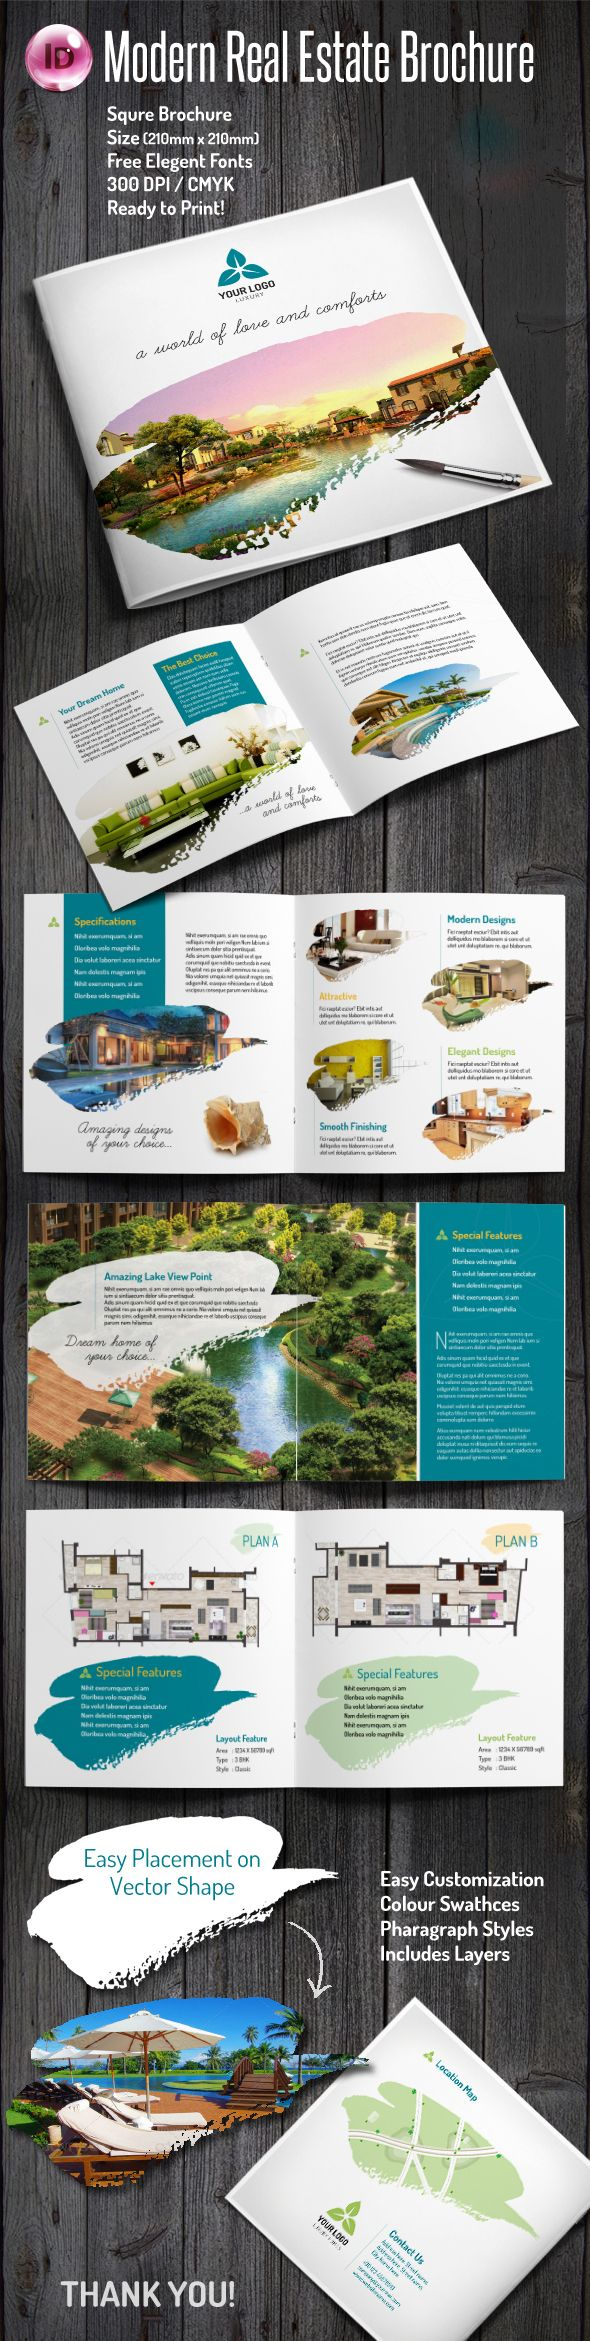 best images about advertising marketing buy modern real estate brochure by laksme on graphicriver elegant square shape brochure vector shape image place holder easy to customize logo